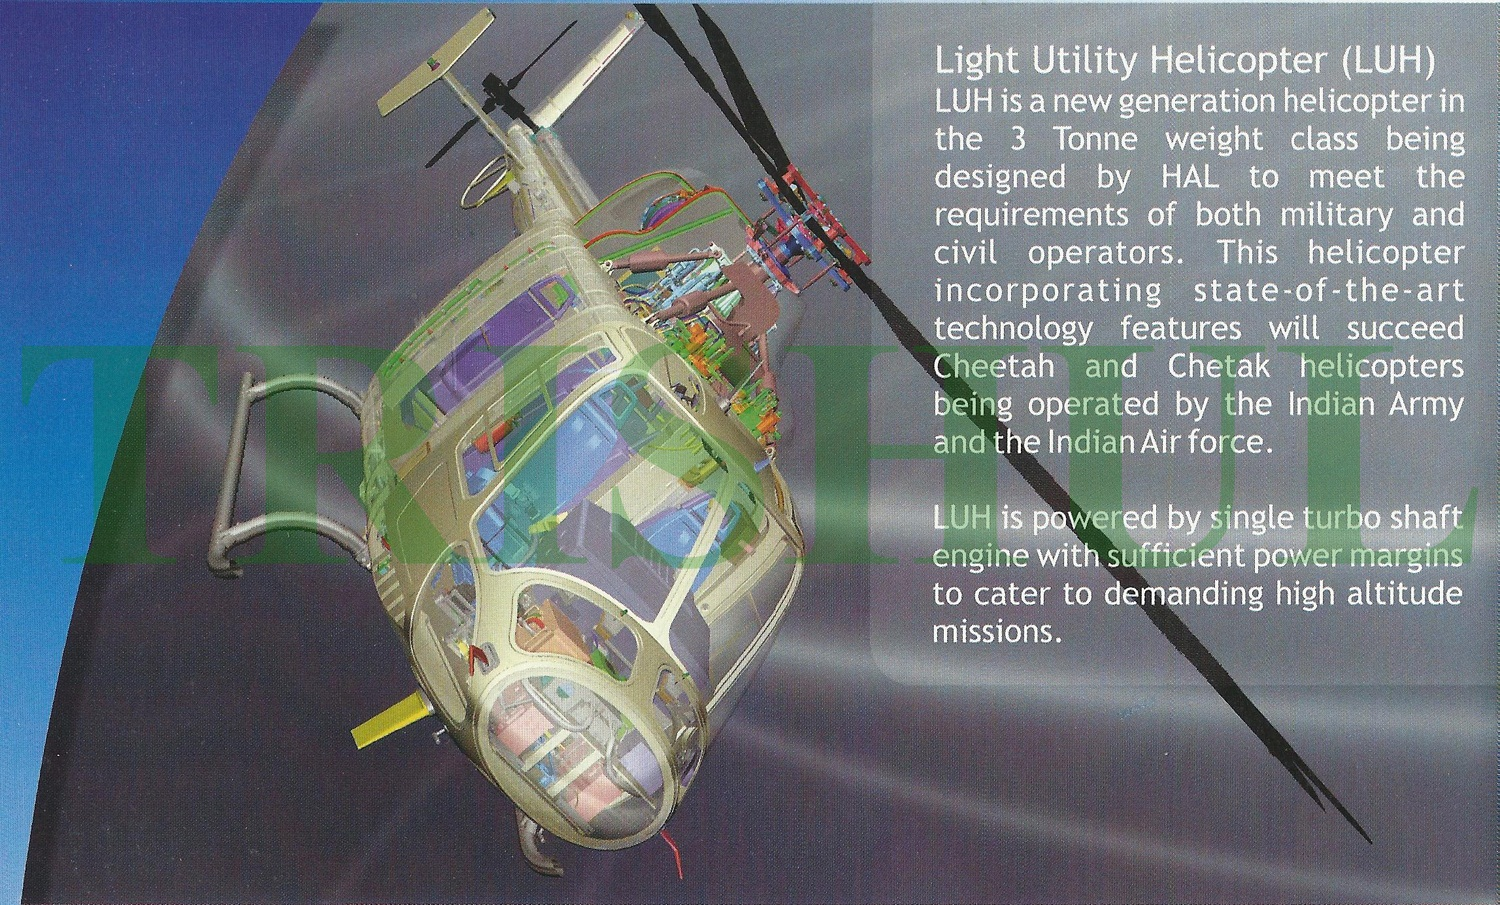 hal bags order for new alh